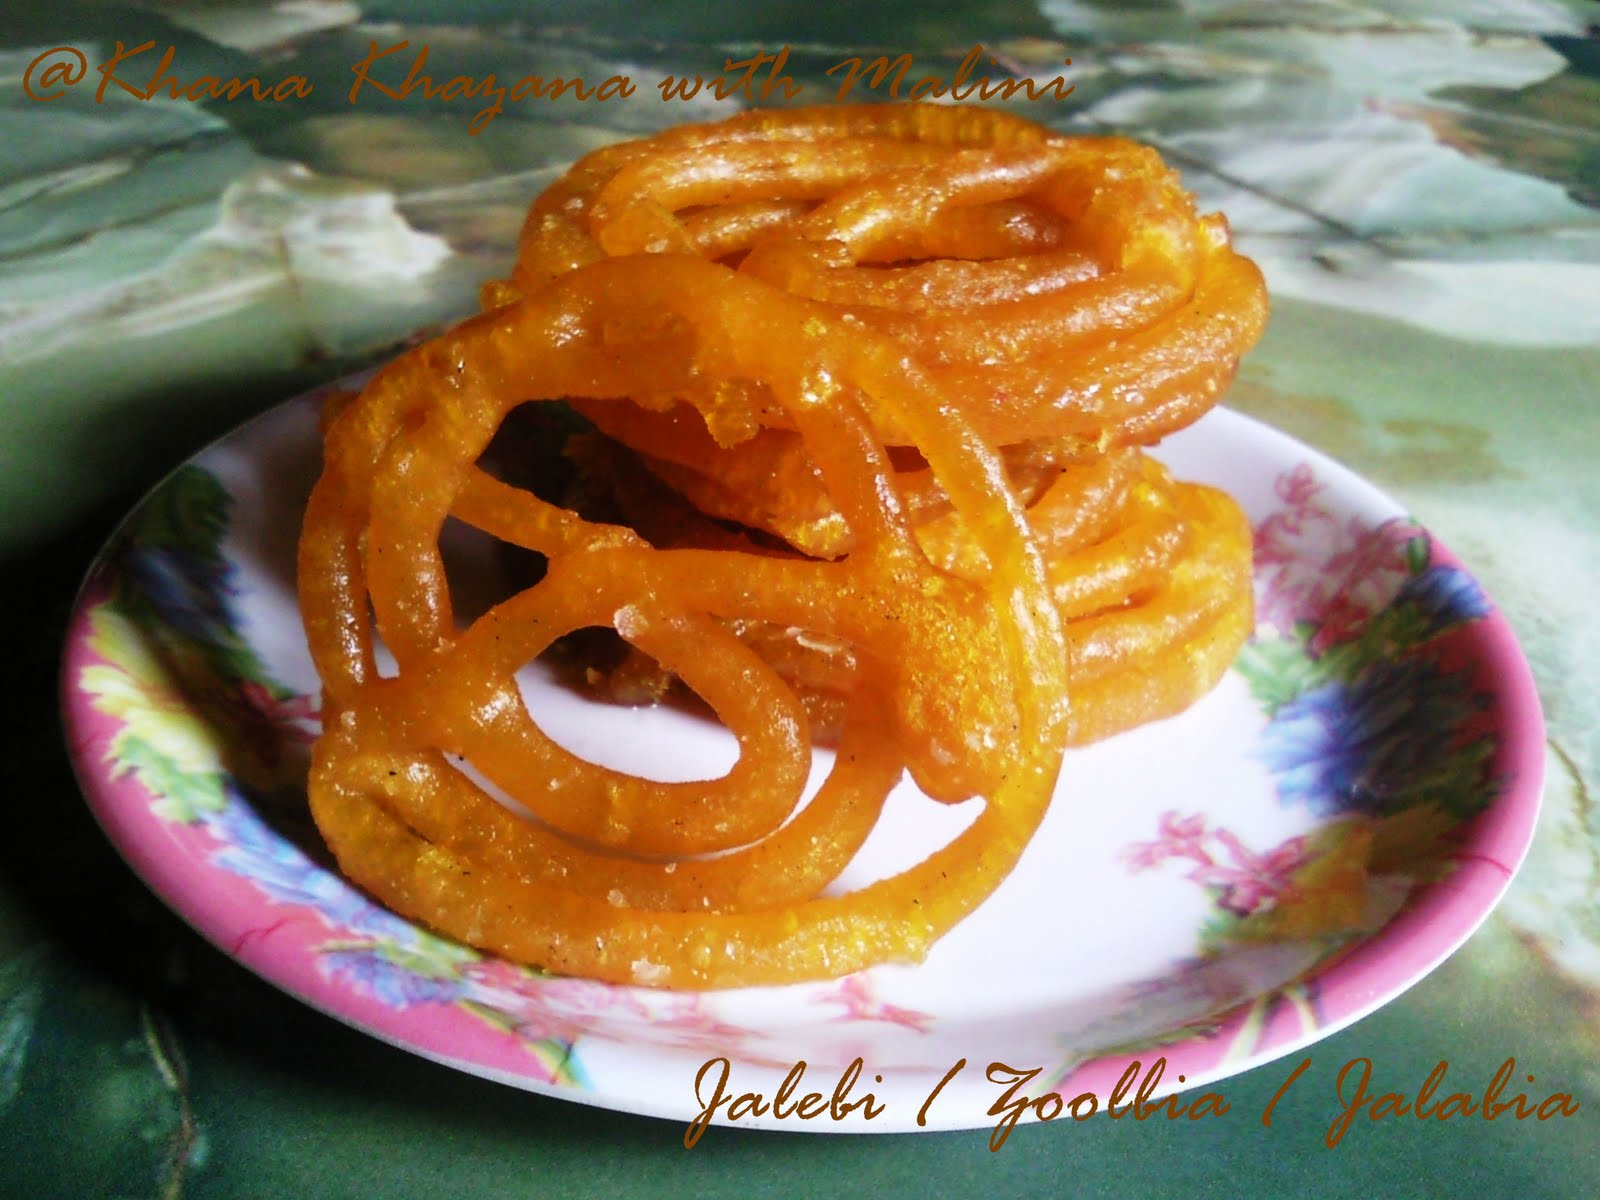 Khana khazana with malini jalebi indian cooking challenge for jalebi indian cooking challenge for august 2011 forumfinder Image collections